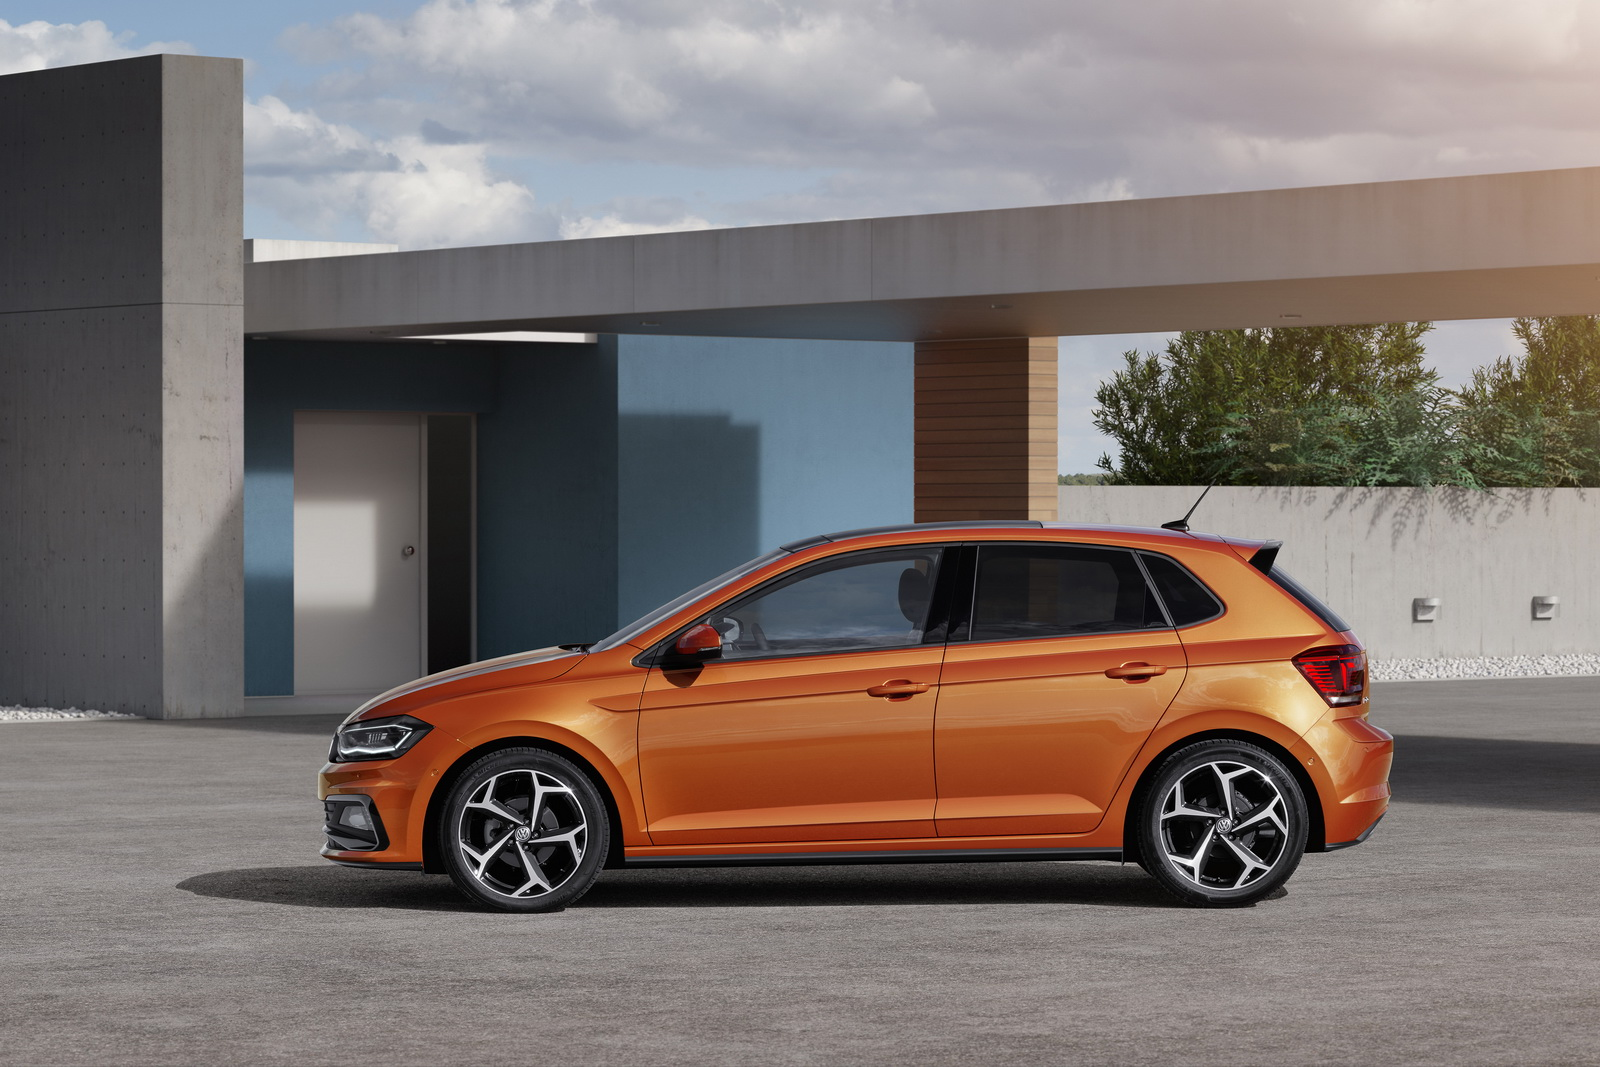 Volkswagen Polo and Polo GTI 2018 (3)